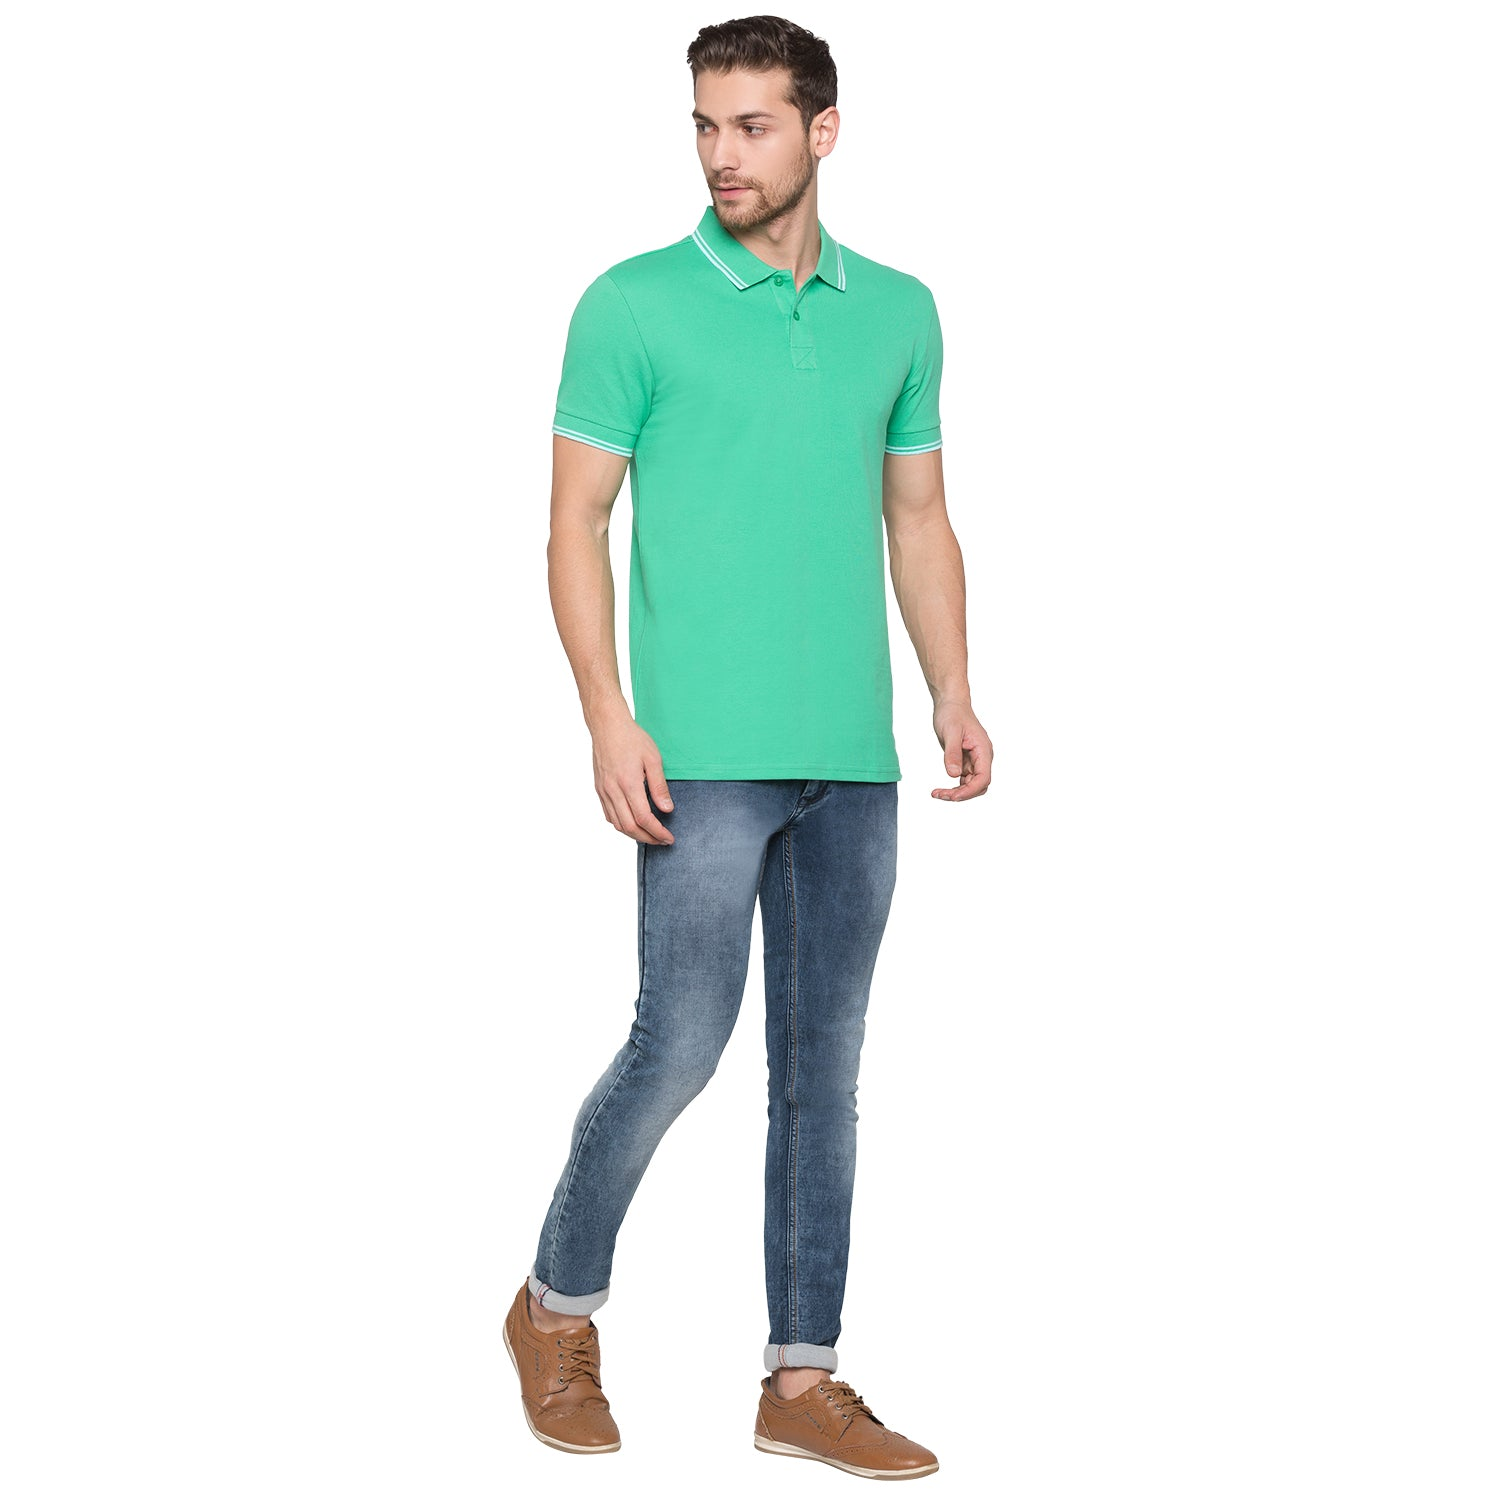 Globus Green Solid Polo T-Shirt4